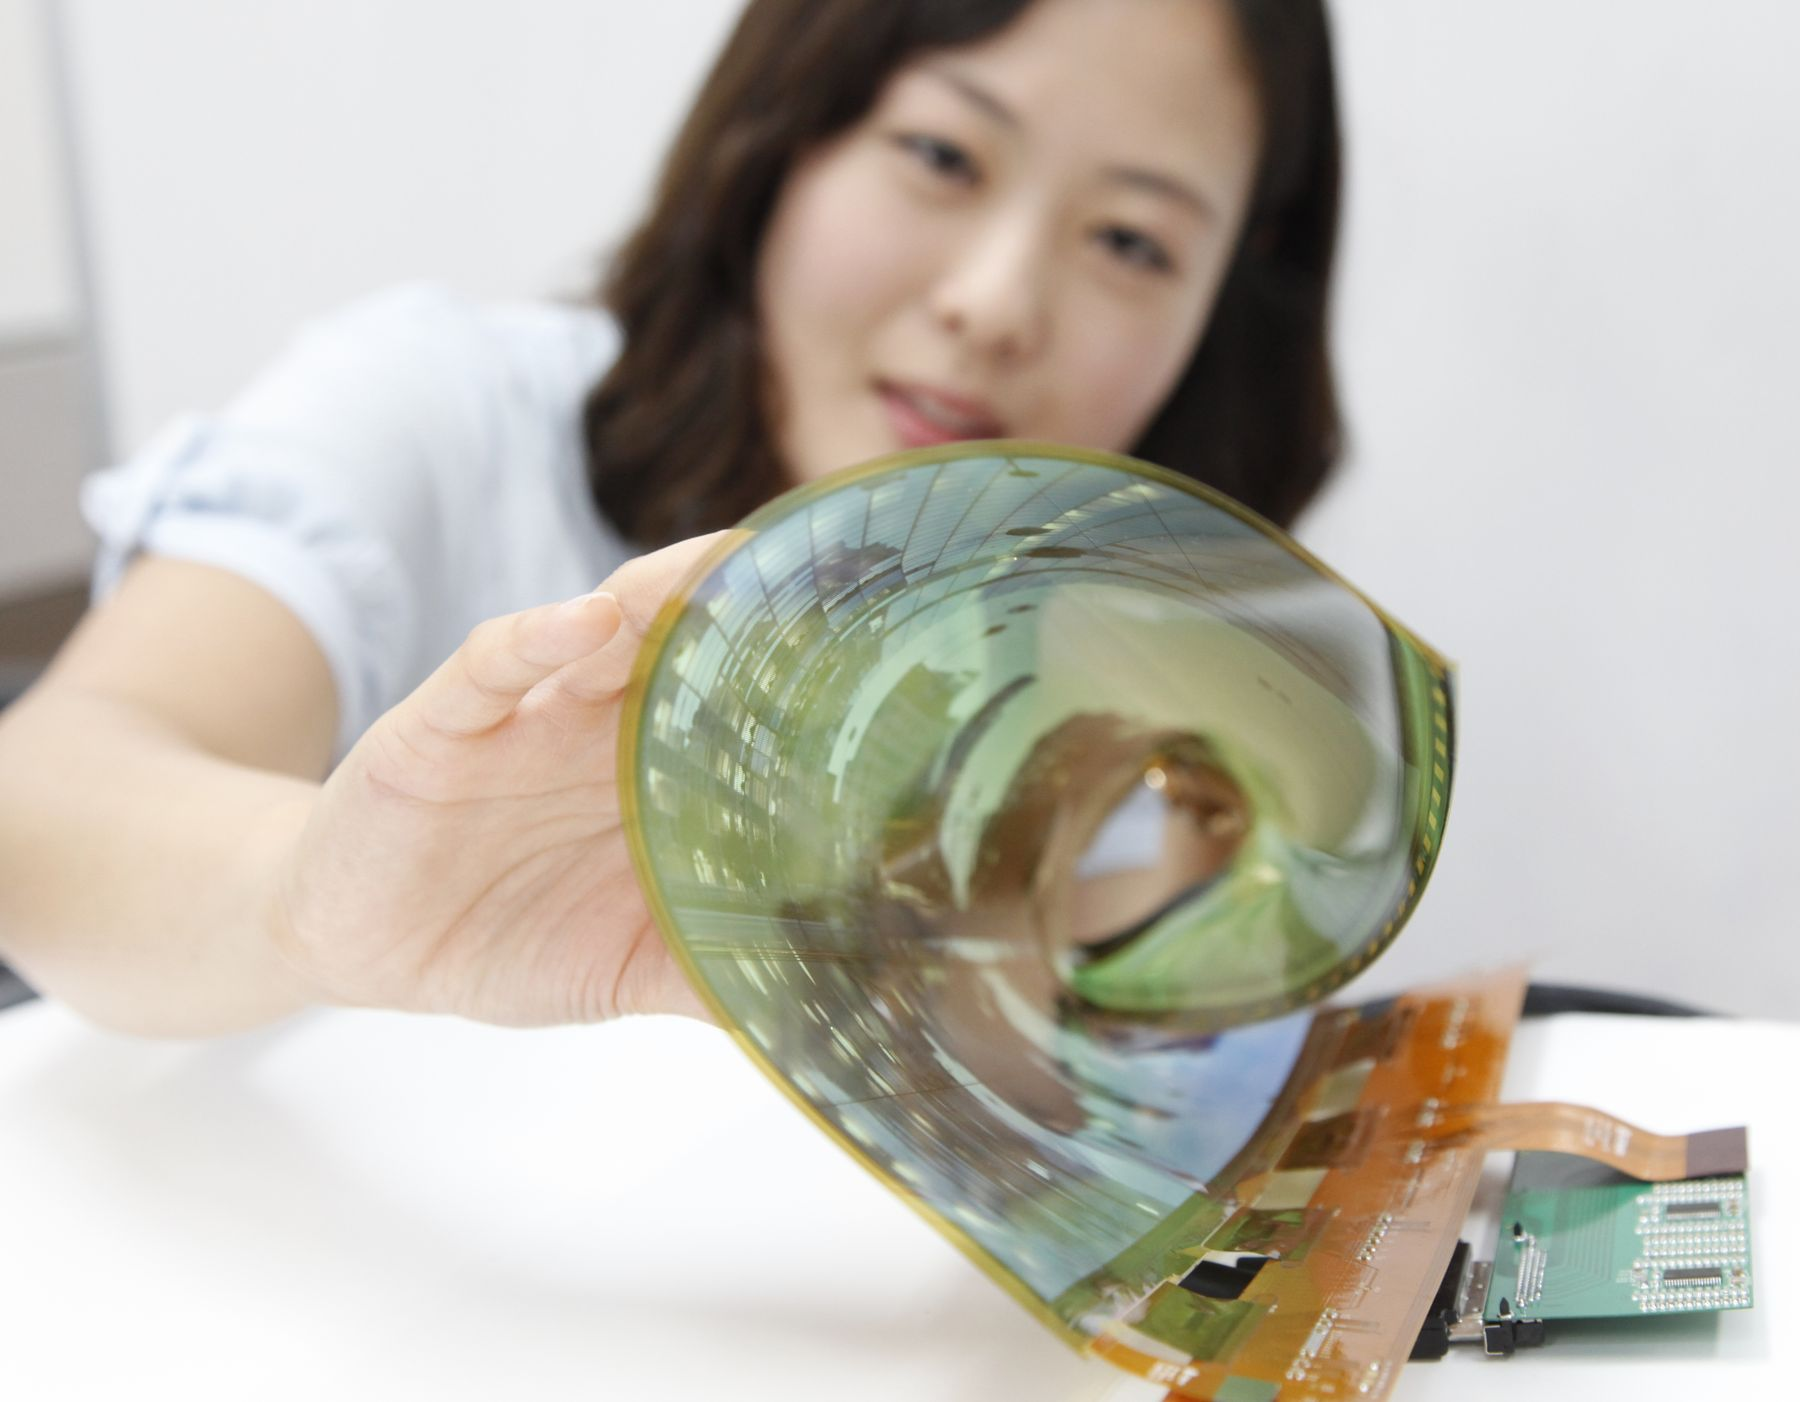 LG_Display_18-inch_flexible_OLED_panel_to_be_showcased_at_SID_2015